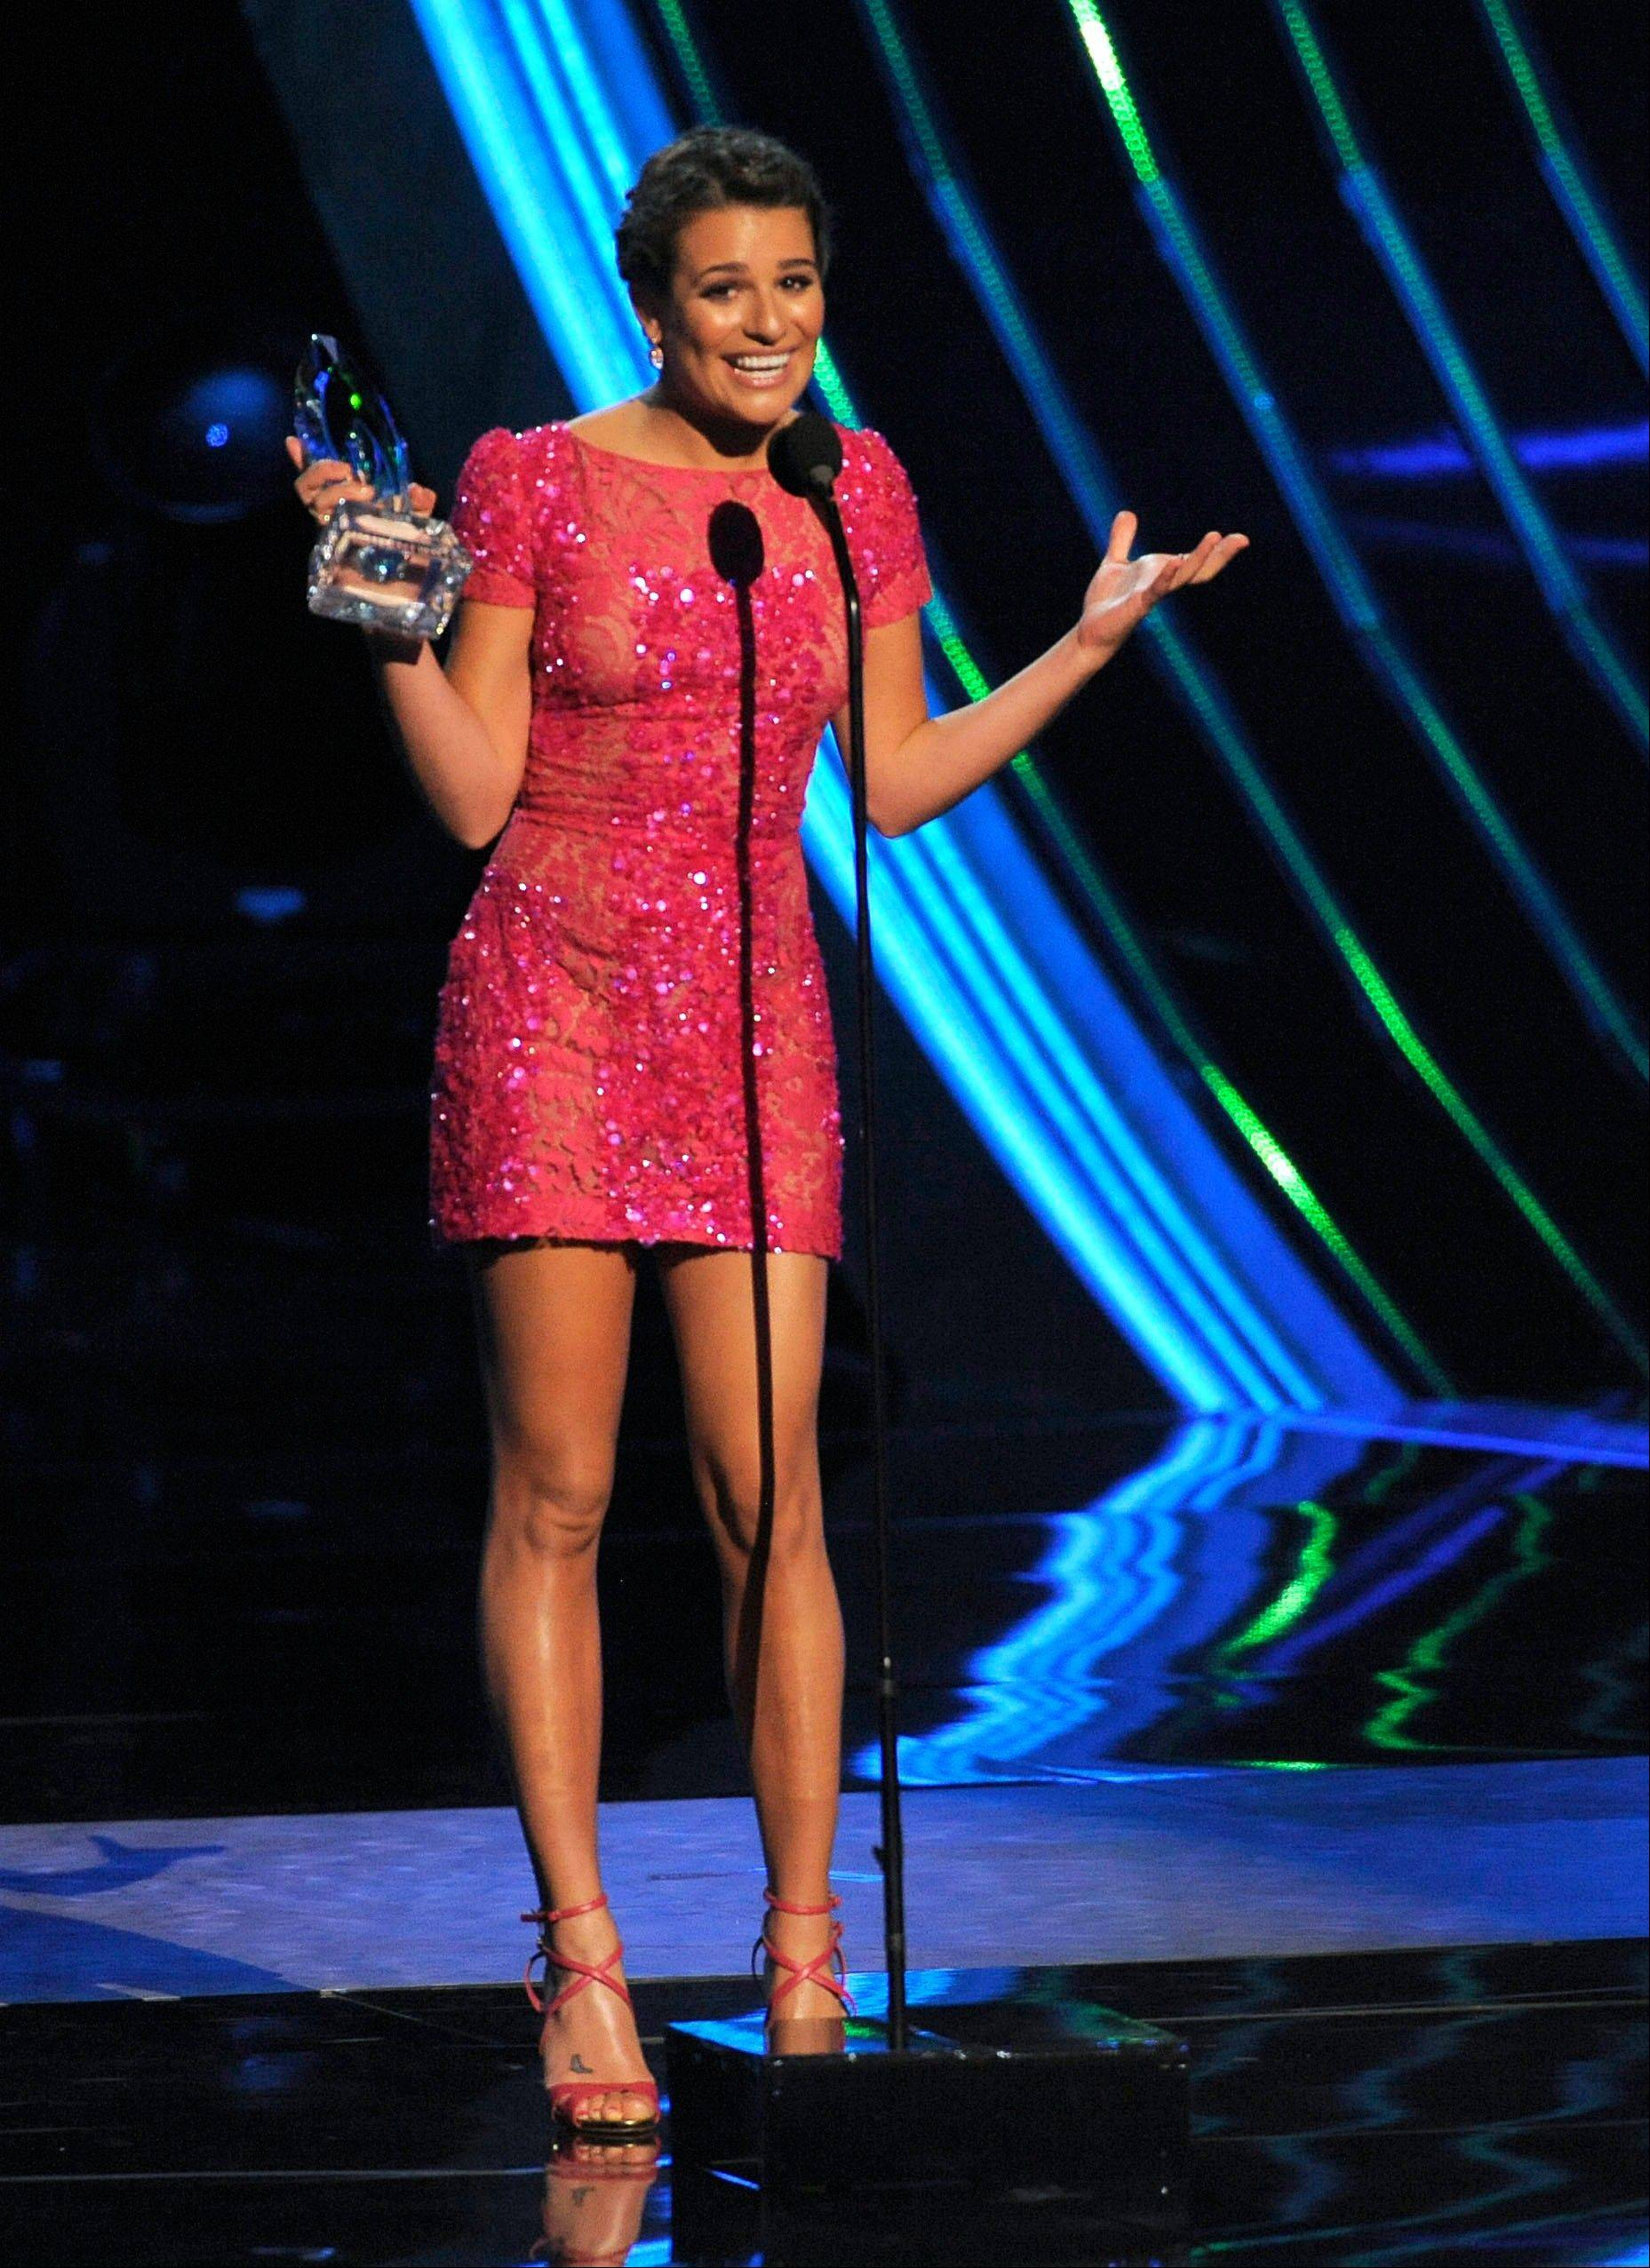 Lea Michele accepts the award for favorite comedic TV actress at the People�s Choice Awards at the Nokia Theatre on Wednesday Jan. 9, 2013, in Los Angeles.